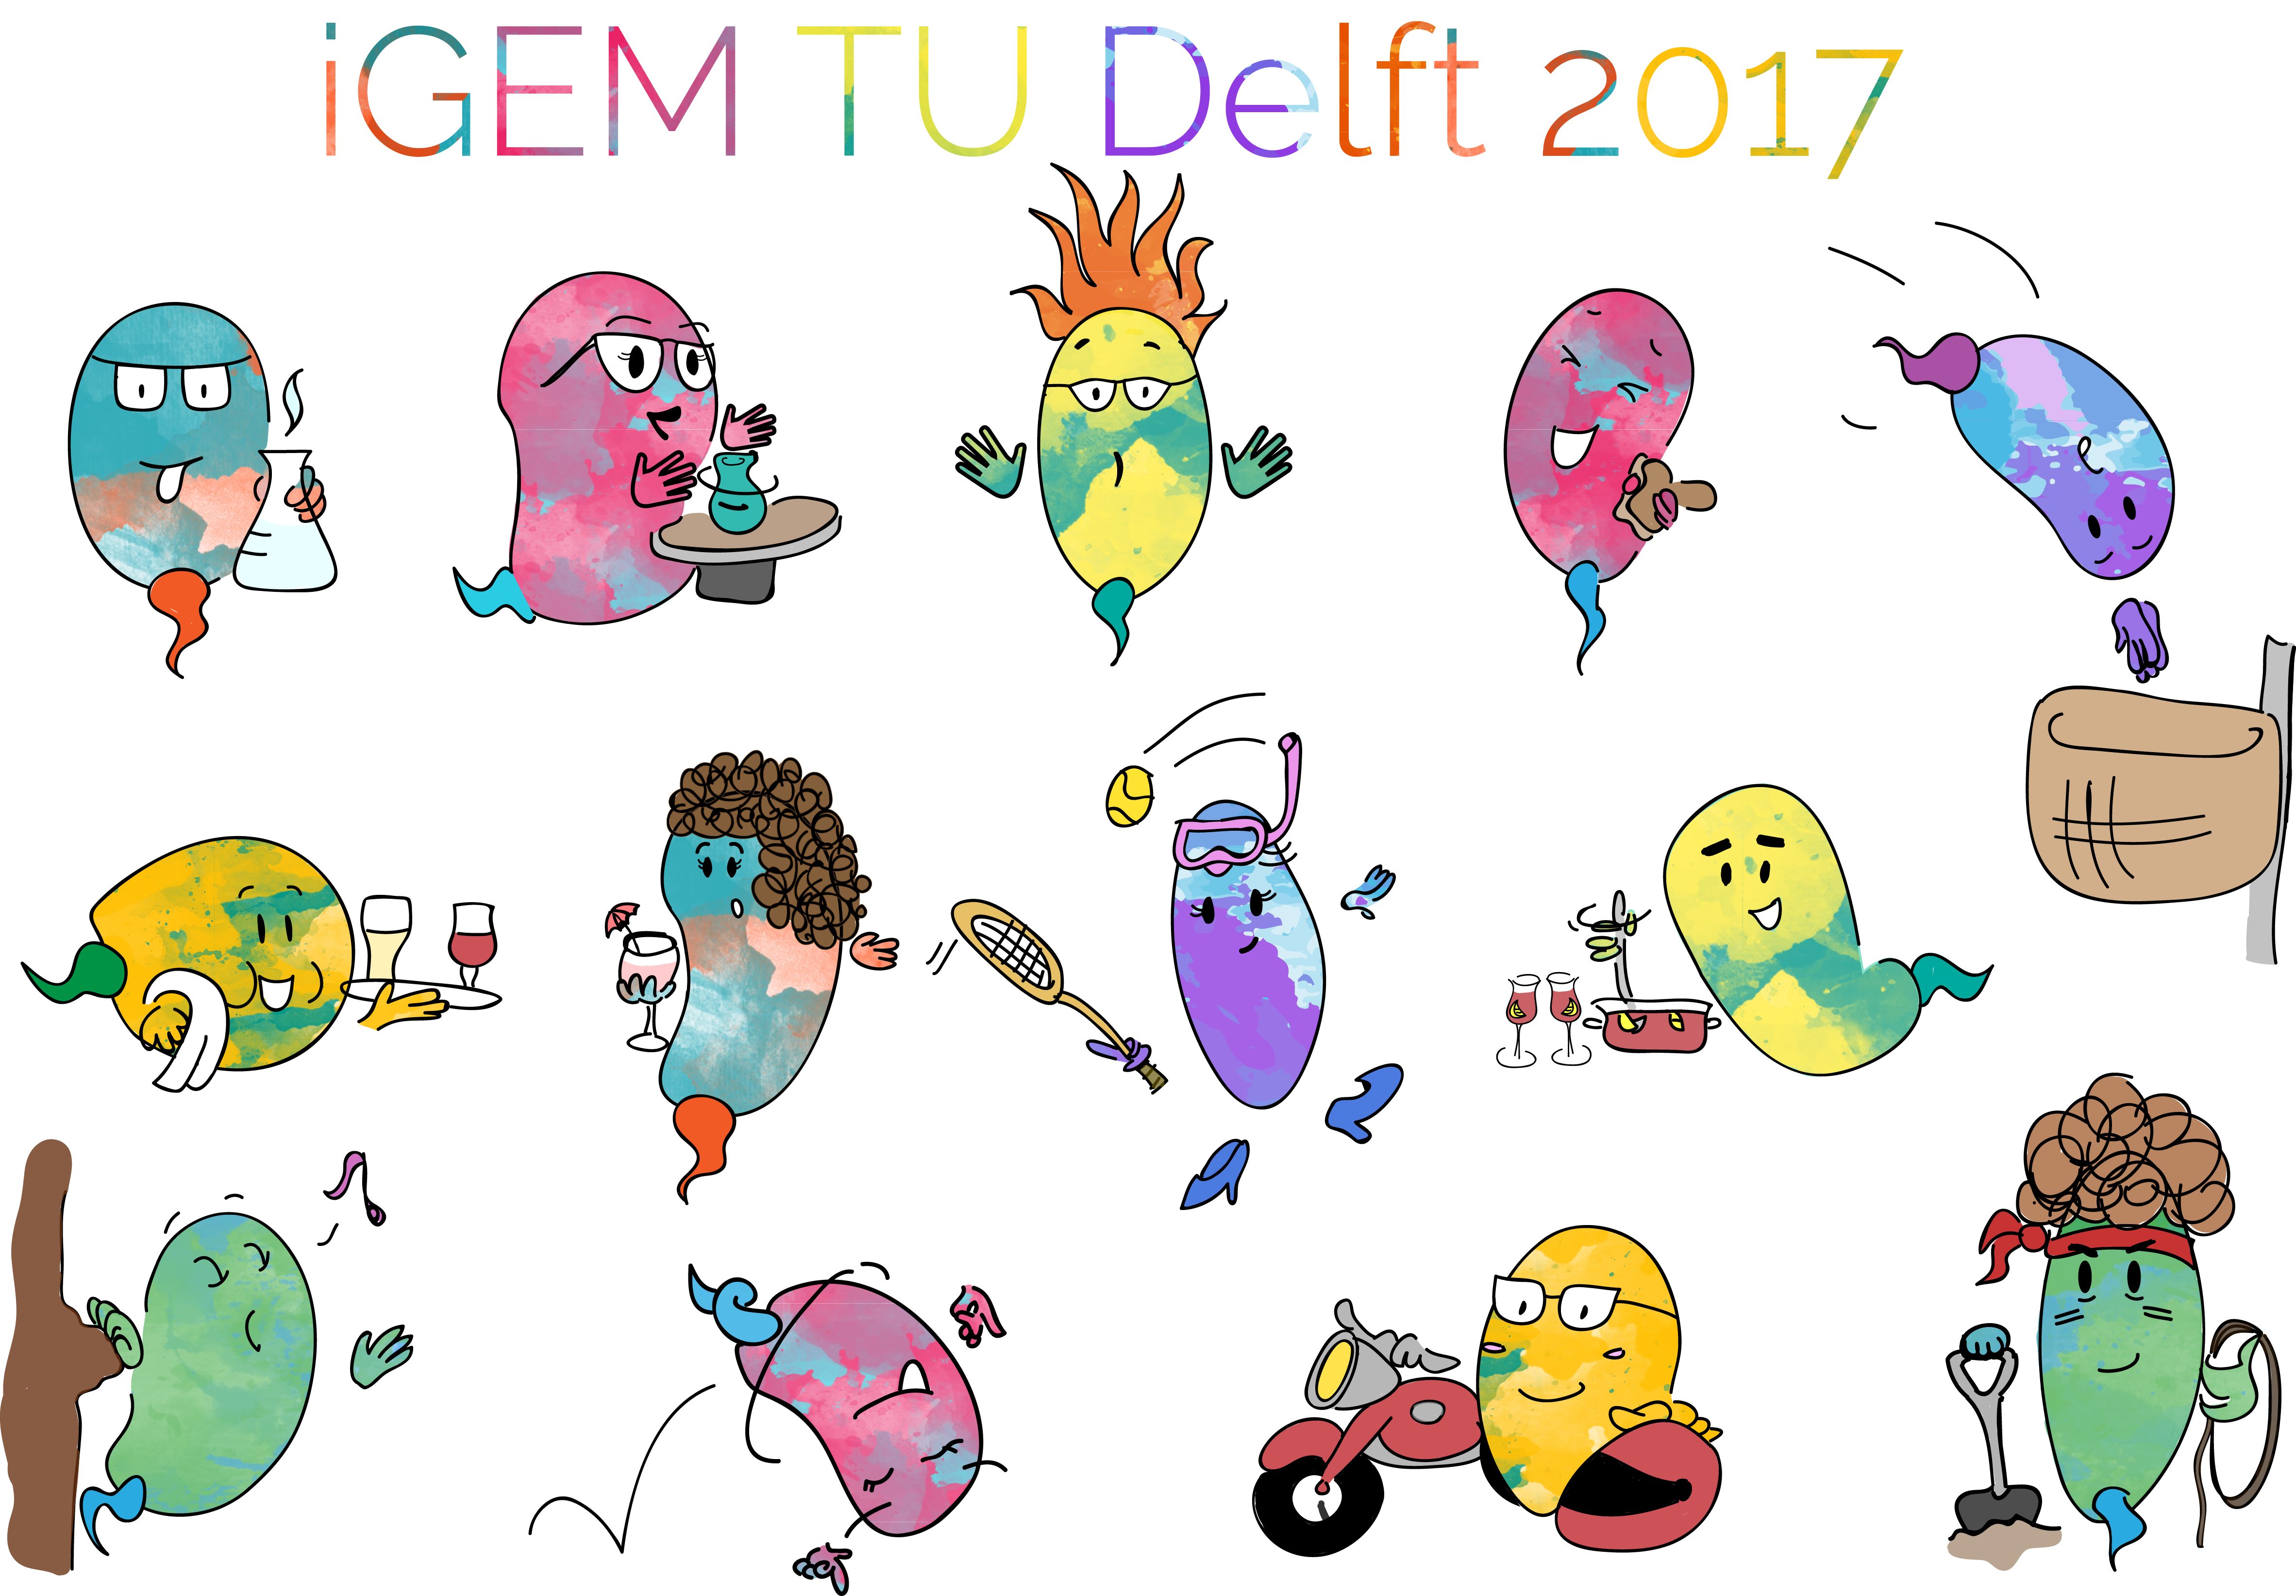 Tudelft igem org . Motivation clipart team player